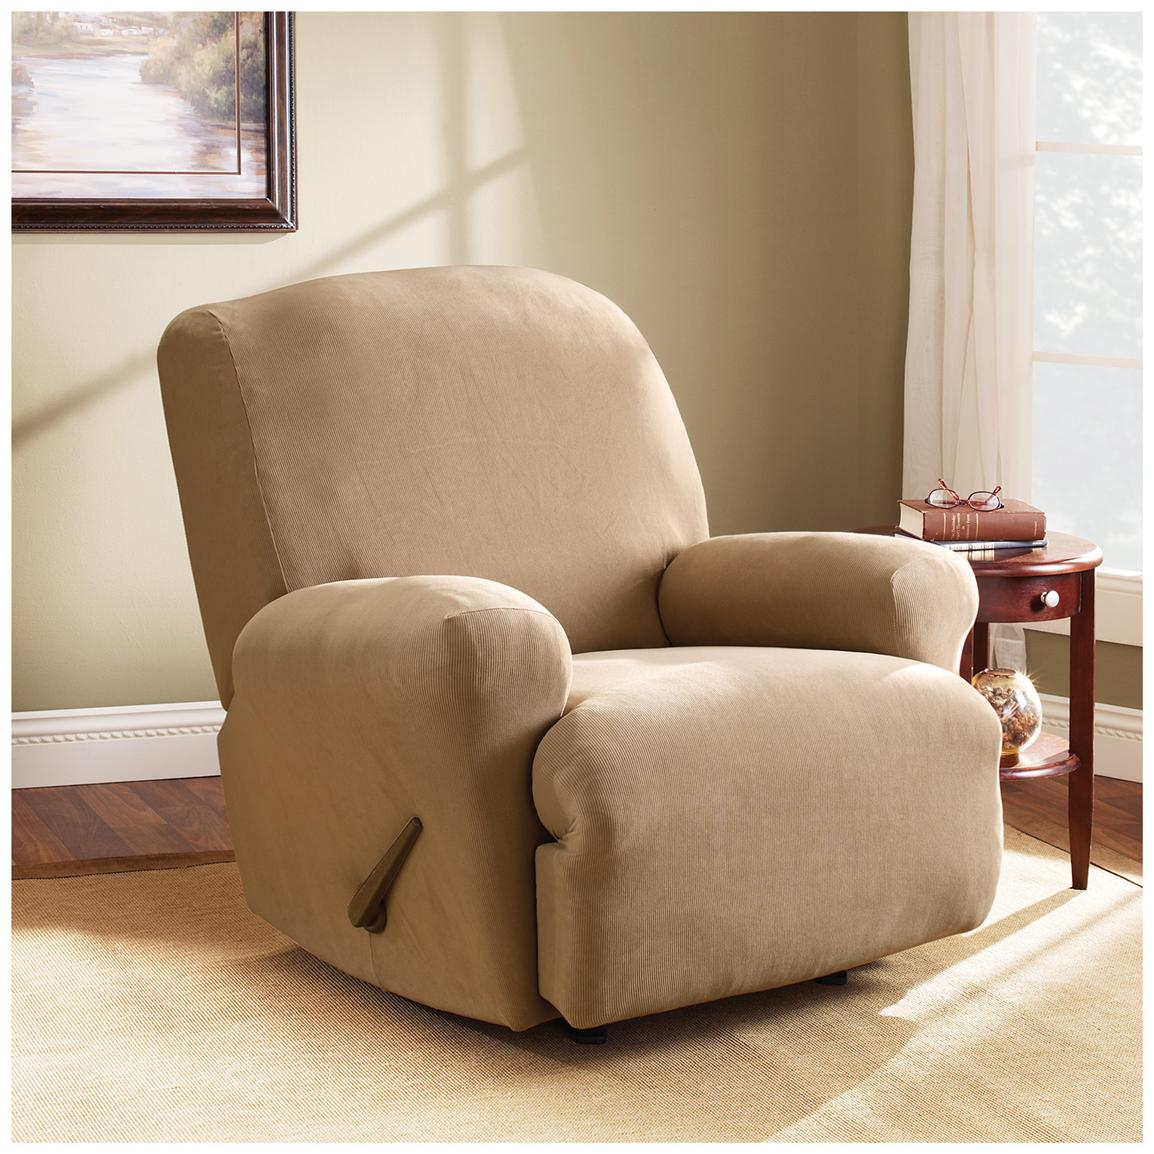 Barrel Chair Slipcover | Recliner Covers | Recliner Cover Walmart